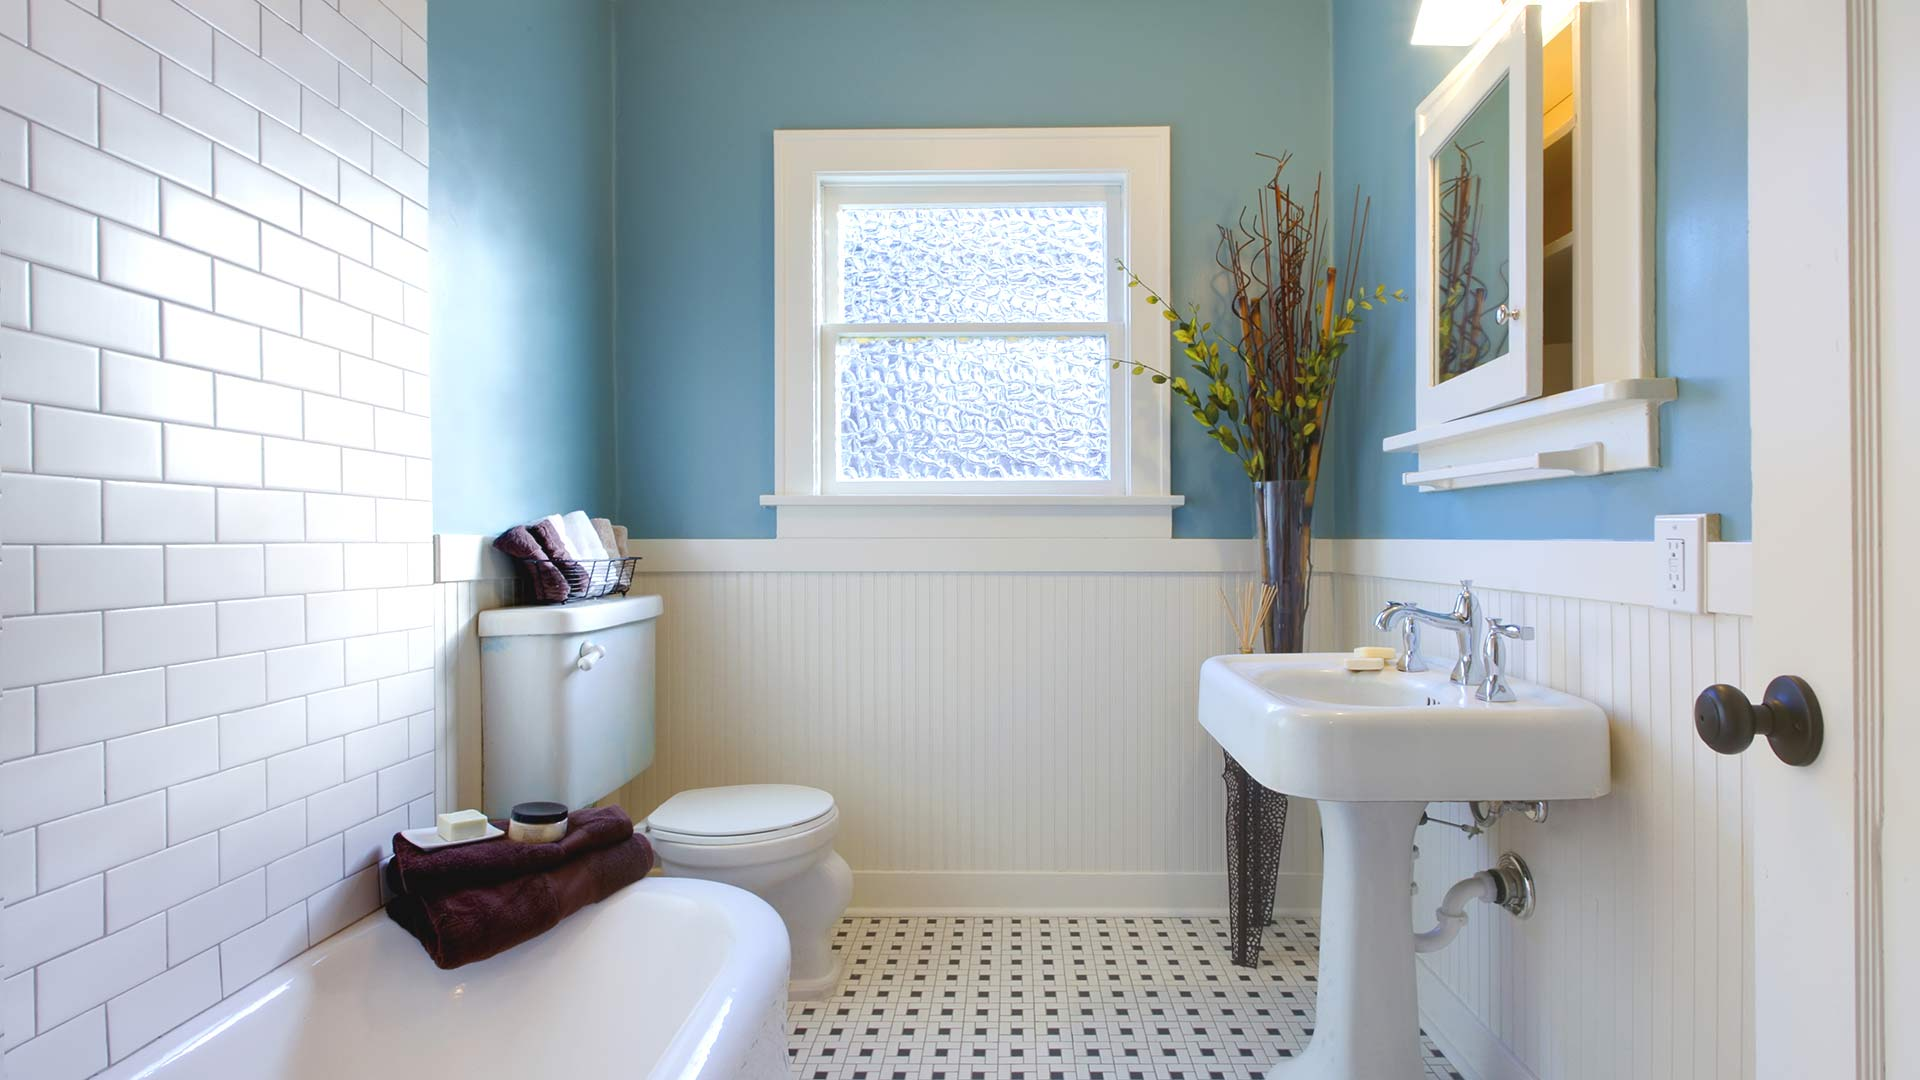 Eco-friendly bathroom with ceramic tile floors and blue walls